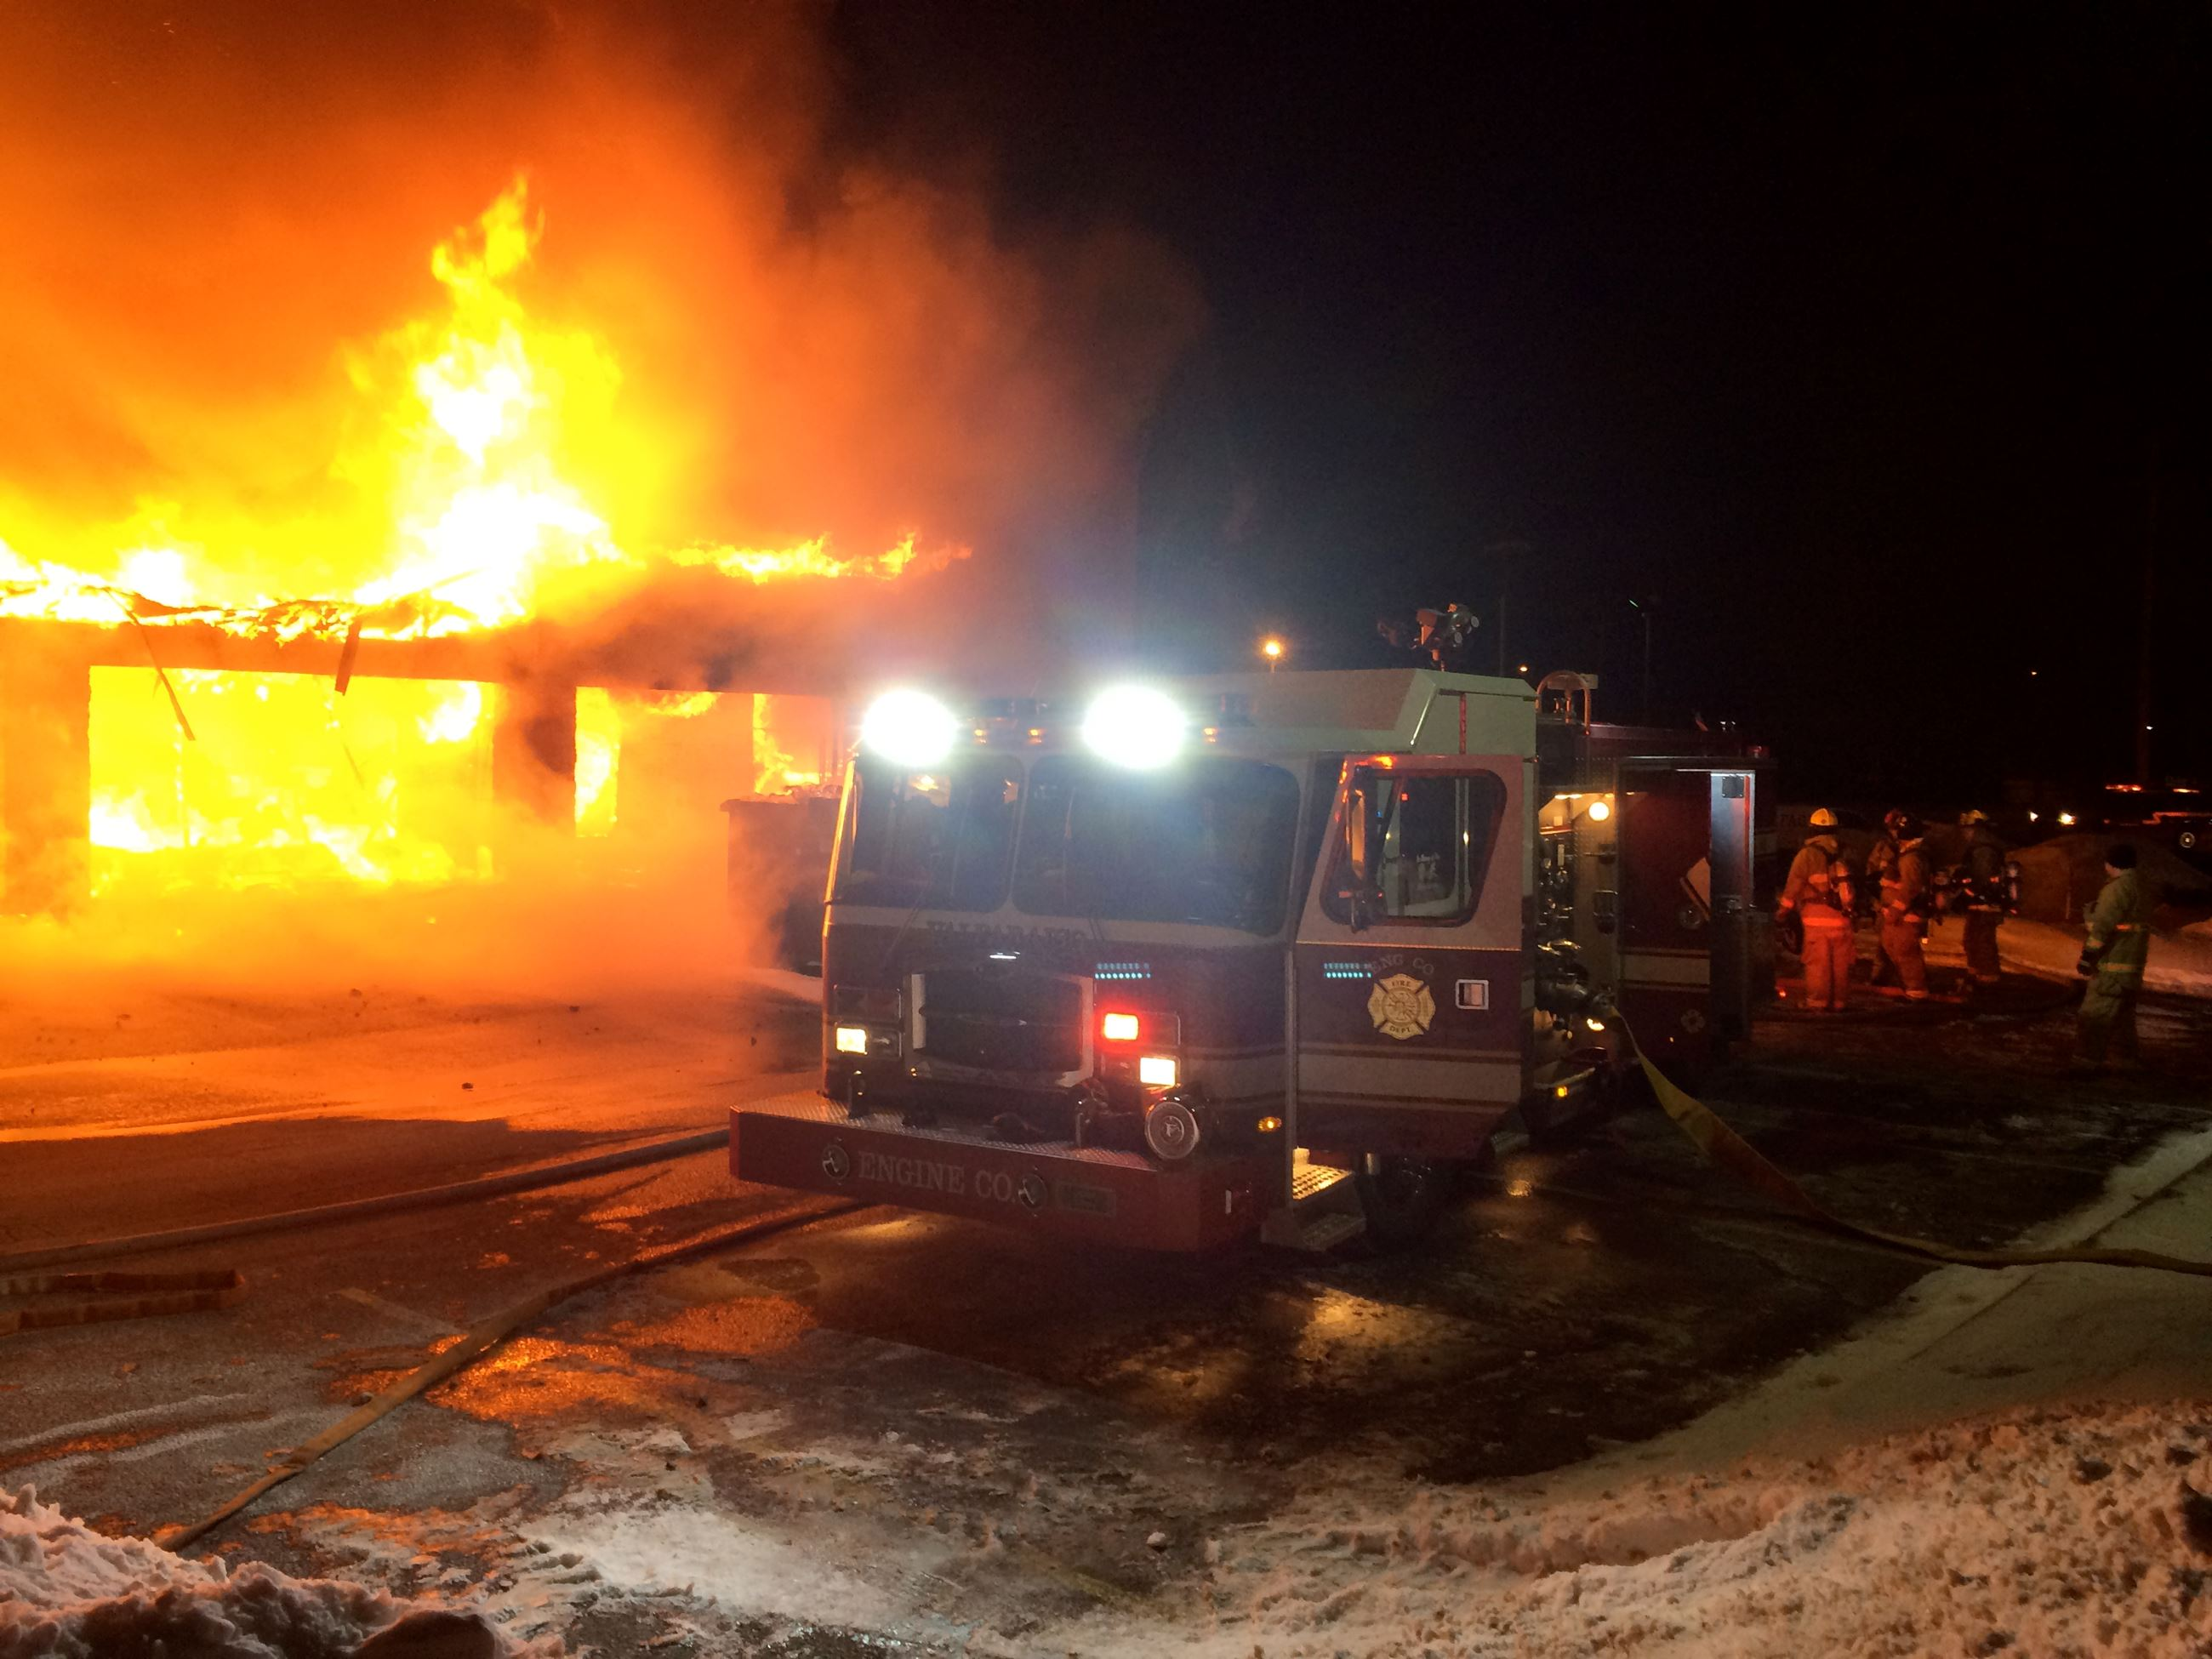 N. Calumet Ave. Fire - 2014